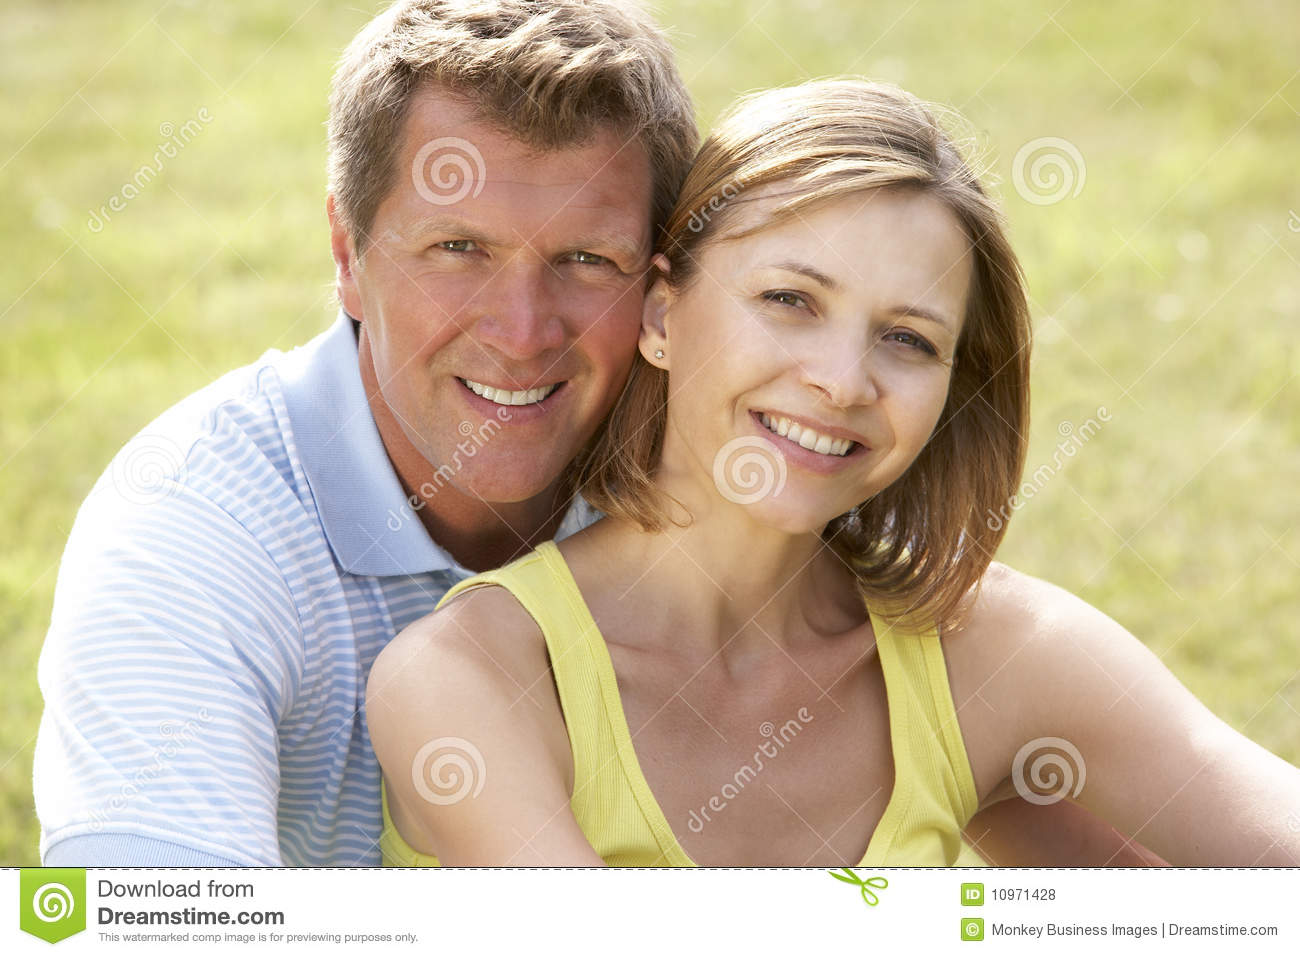 image Middle aged couple with nice bodies